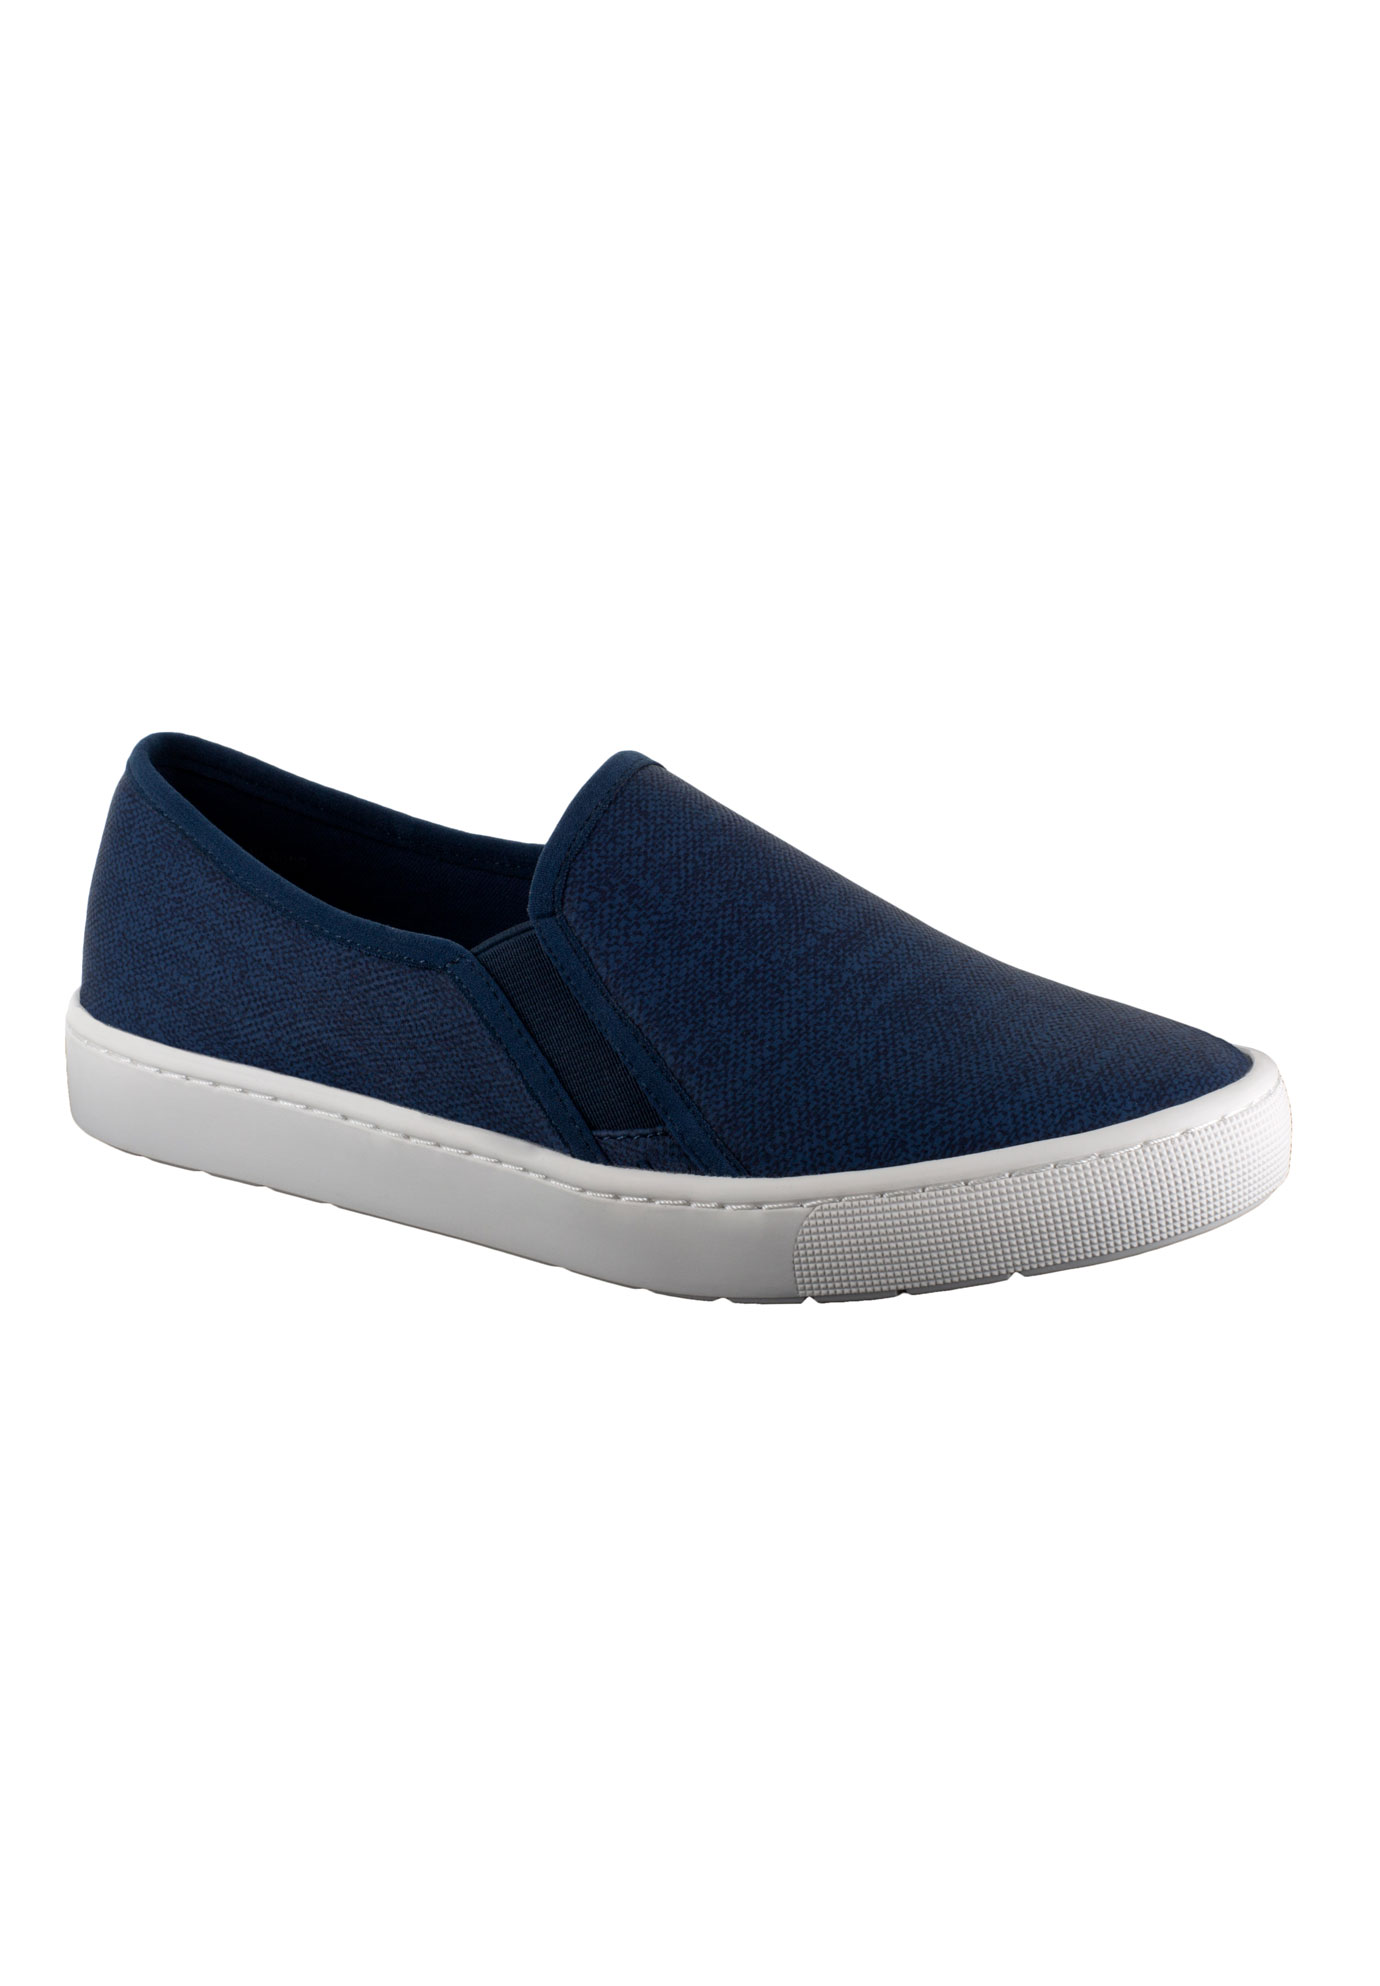 Plaza Slip-Ons by Easy Street®,